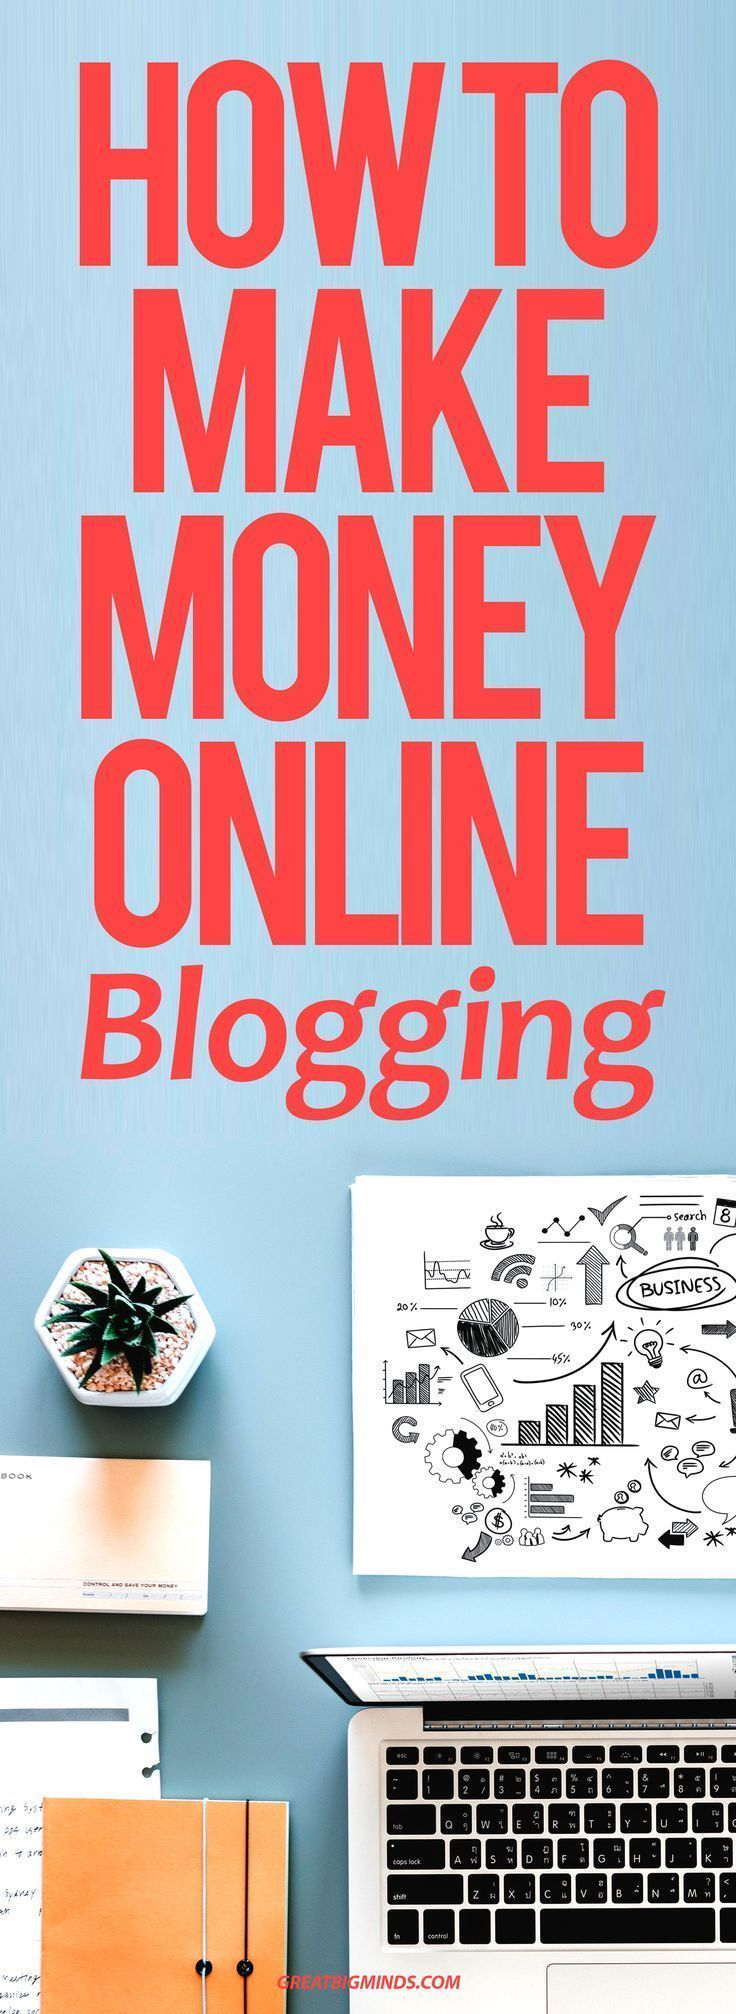 How To Make Money Online Blogging And Facebook Page – Happiness, Inspiring Quotes, Personal Development – Make Money Online | Ways To Make Money Online From Home